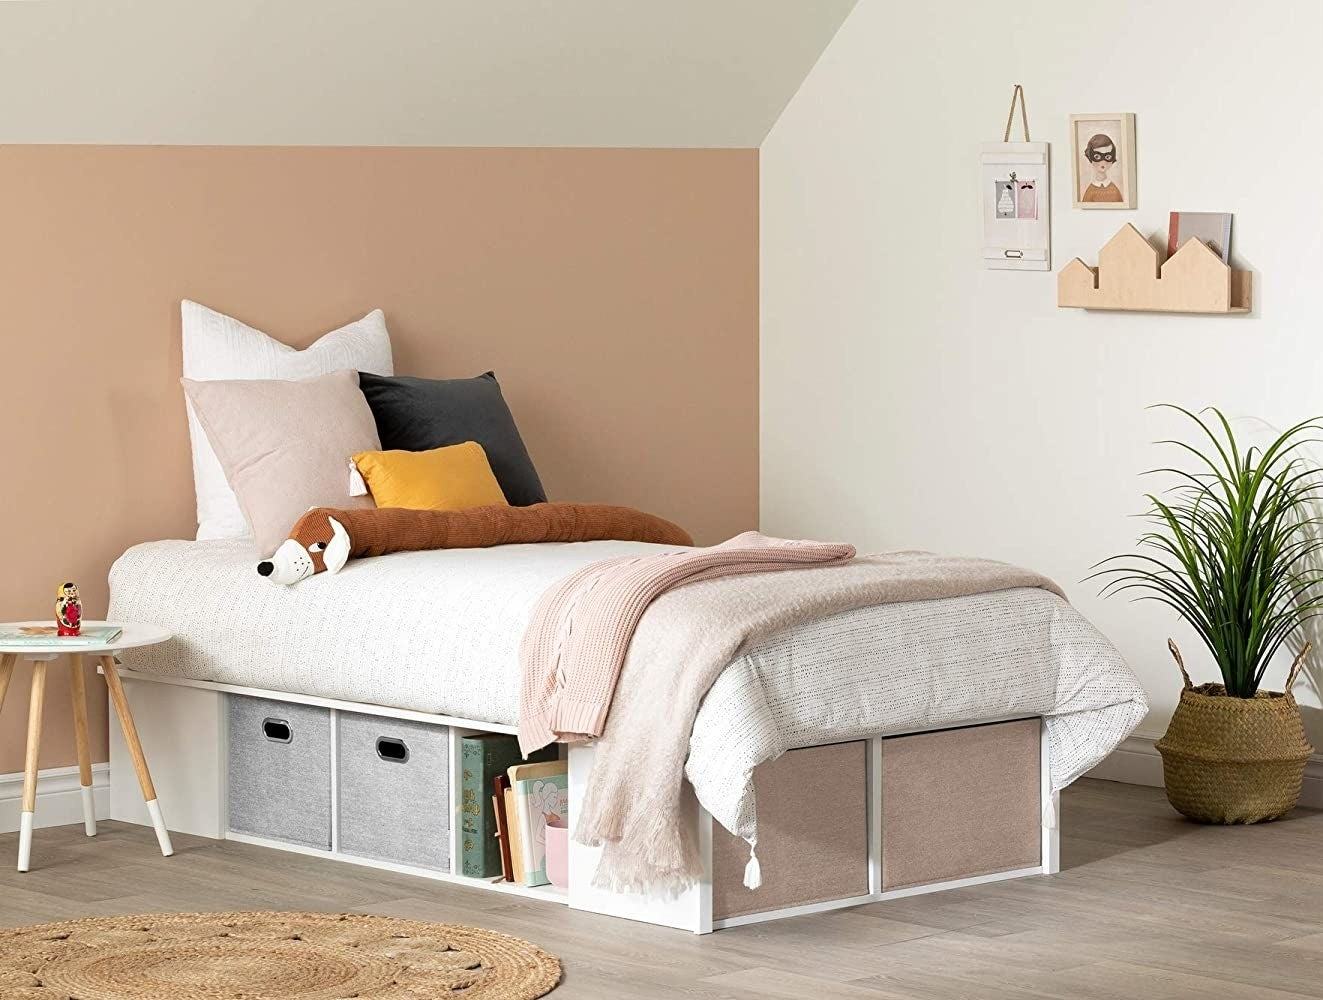 a bed on the storage bed frame in a cute room